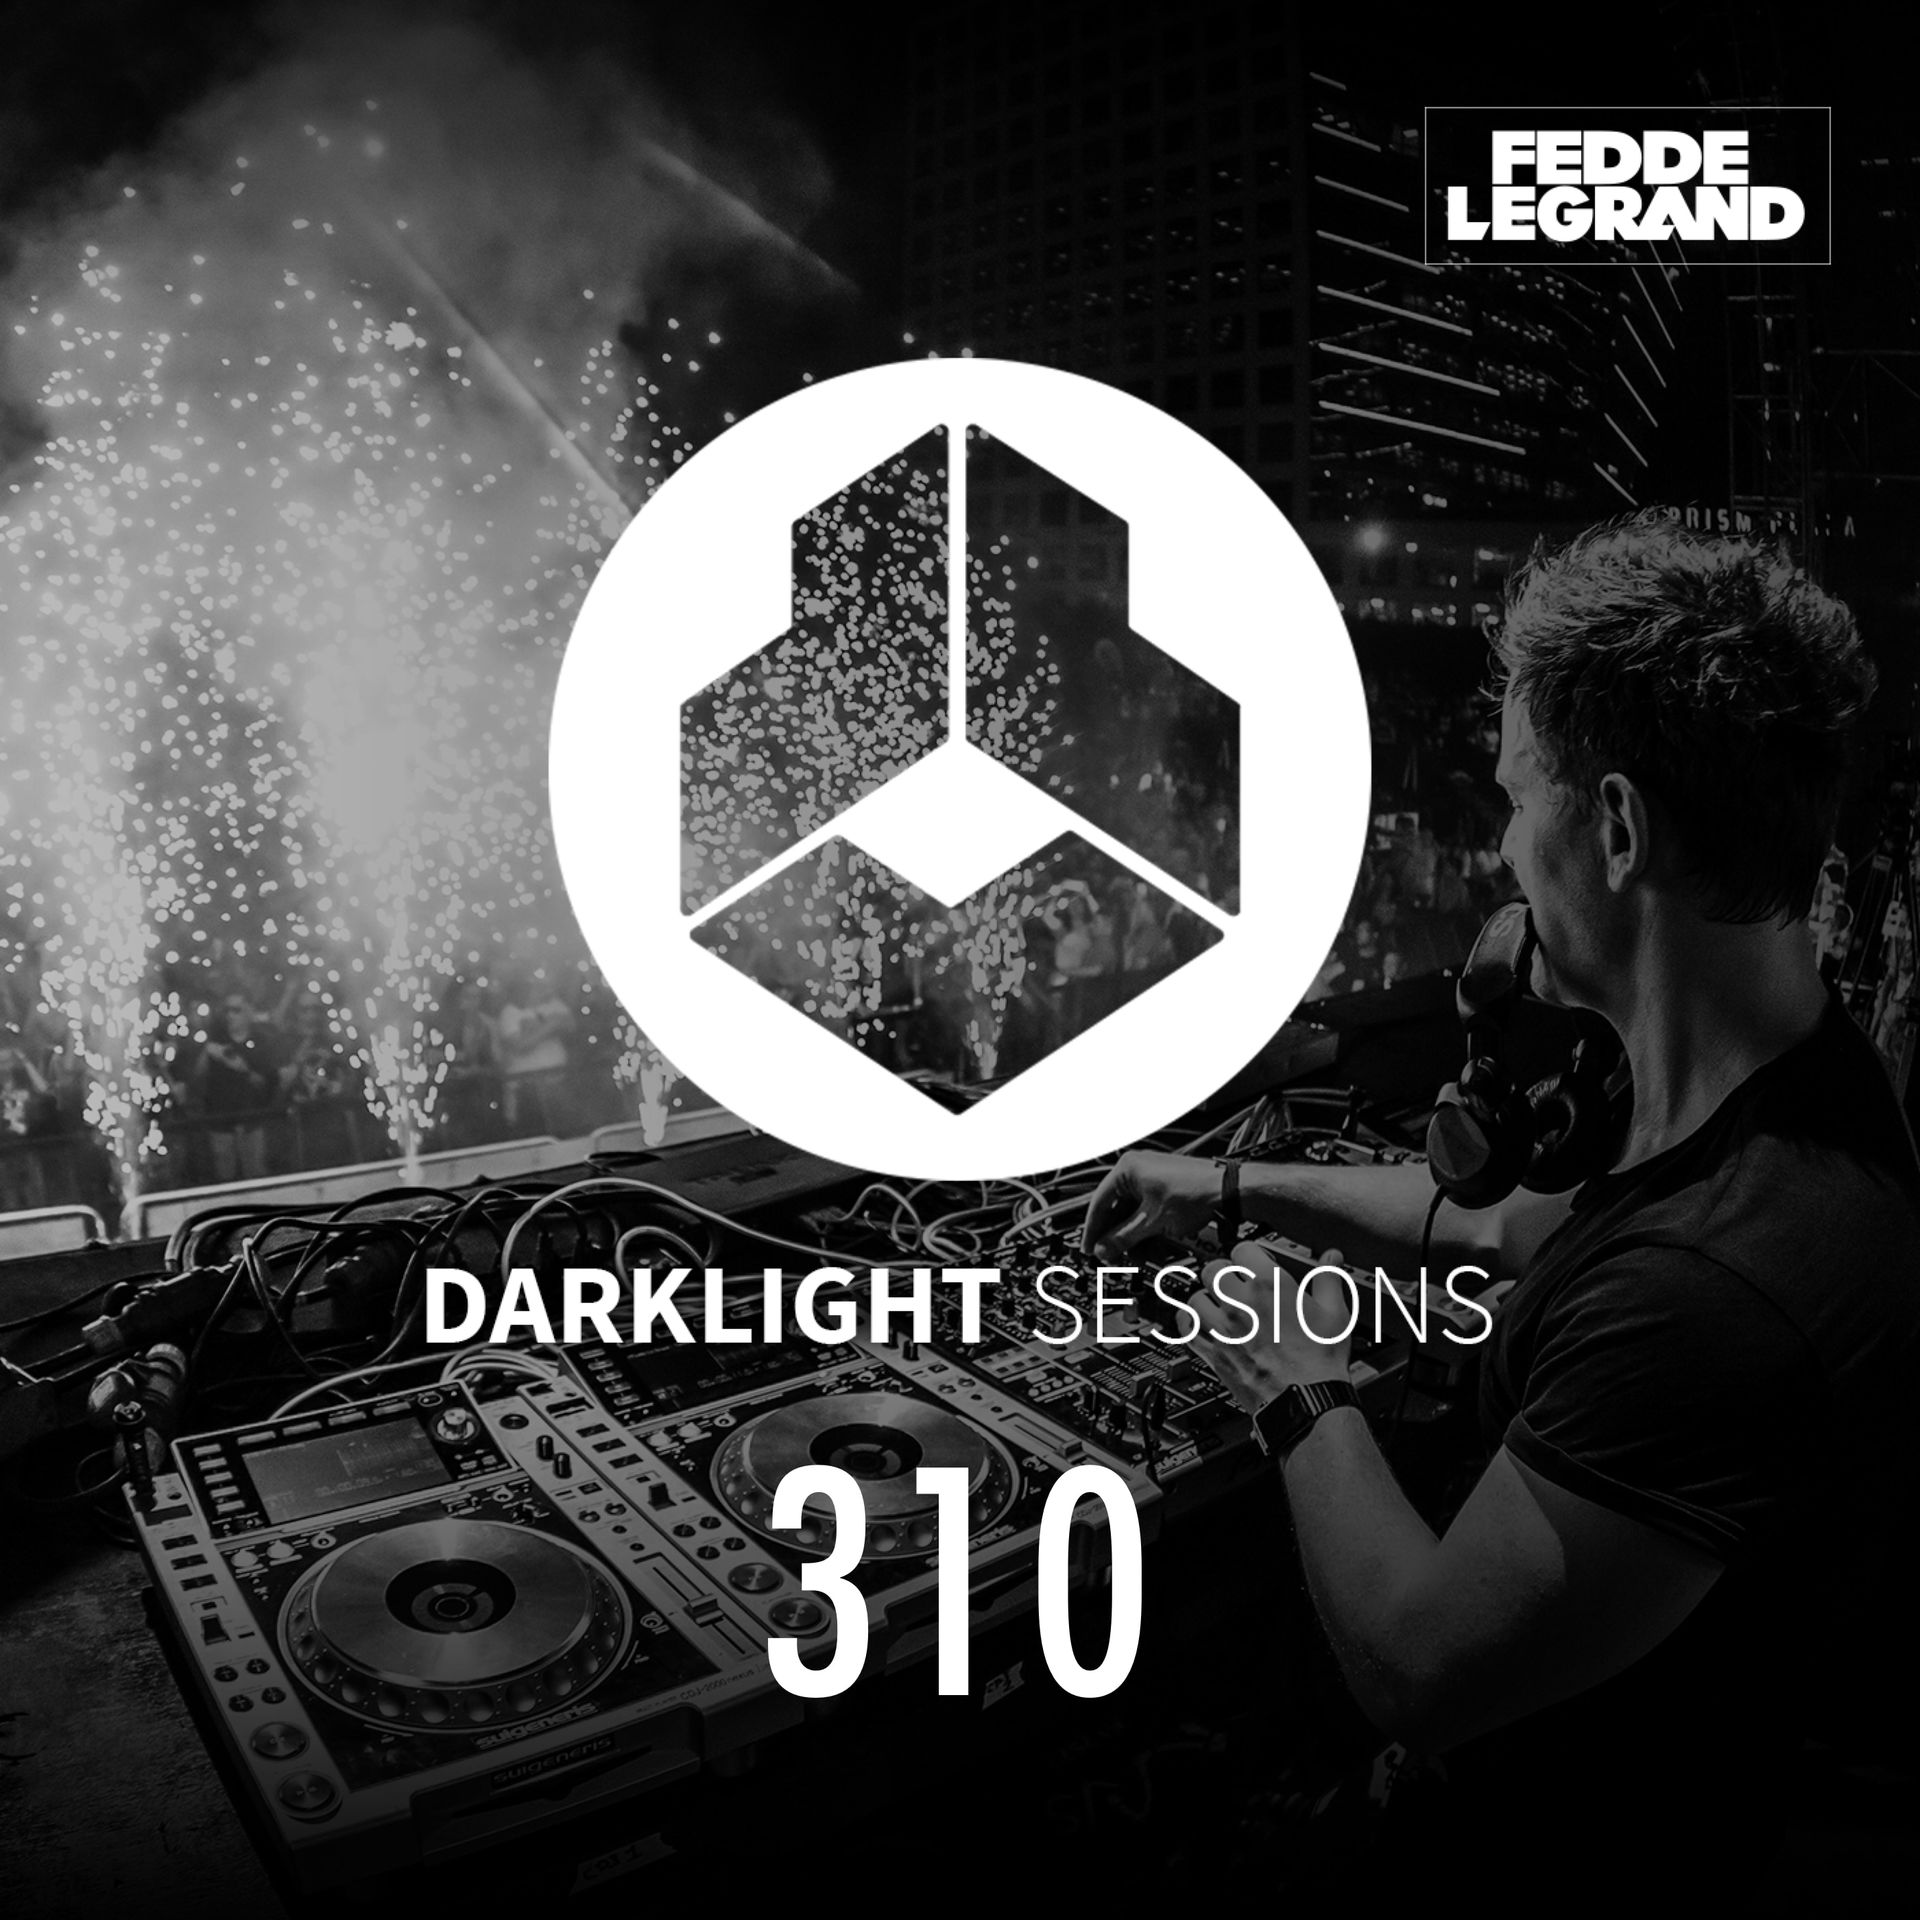 Darklight Sessions 310